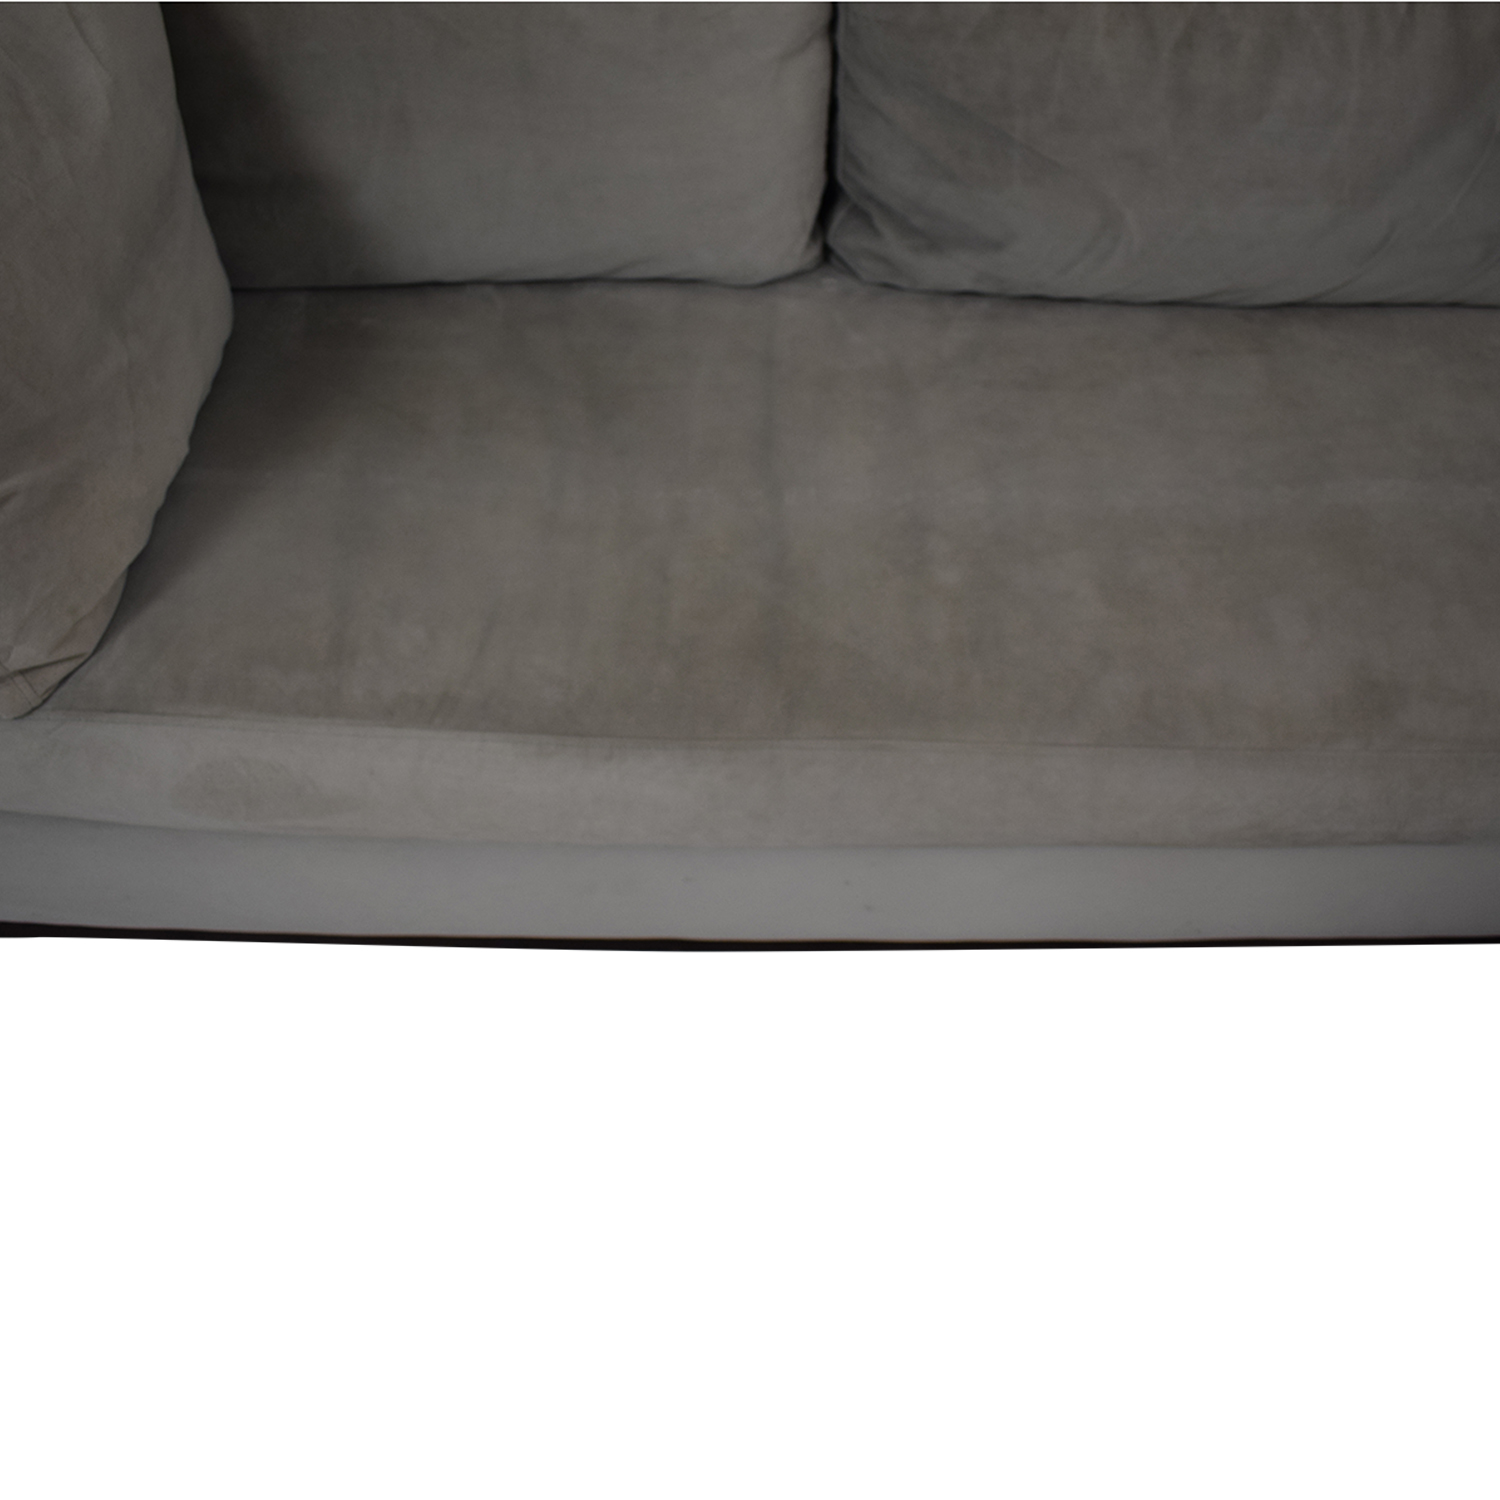 West Elm West Elm Blake Chaise Sectional Sofa nyc